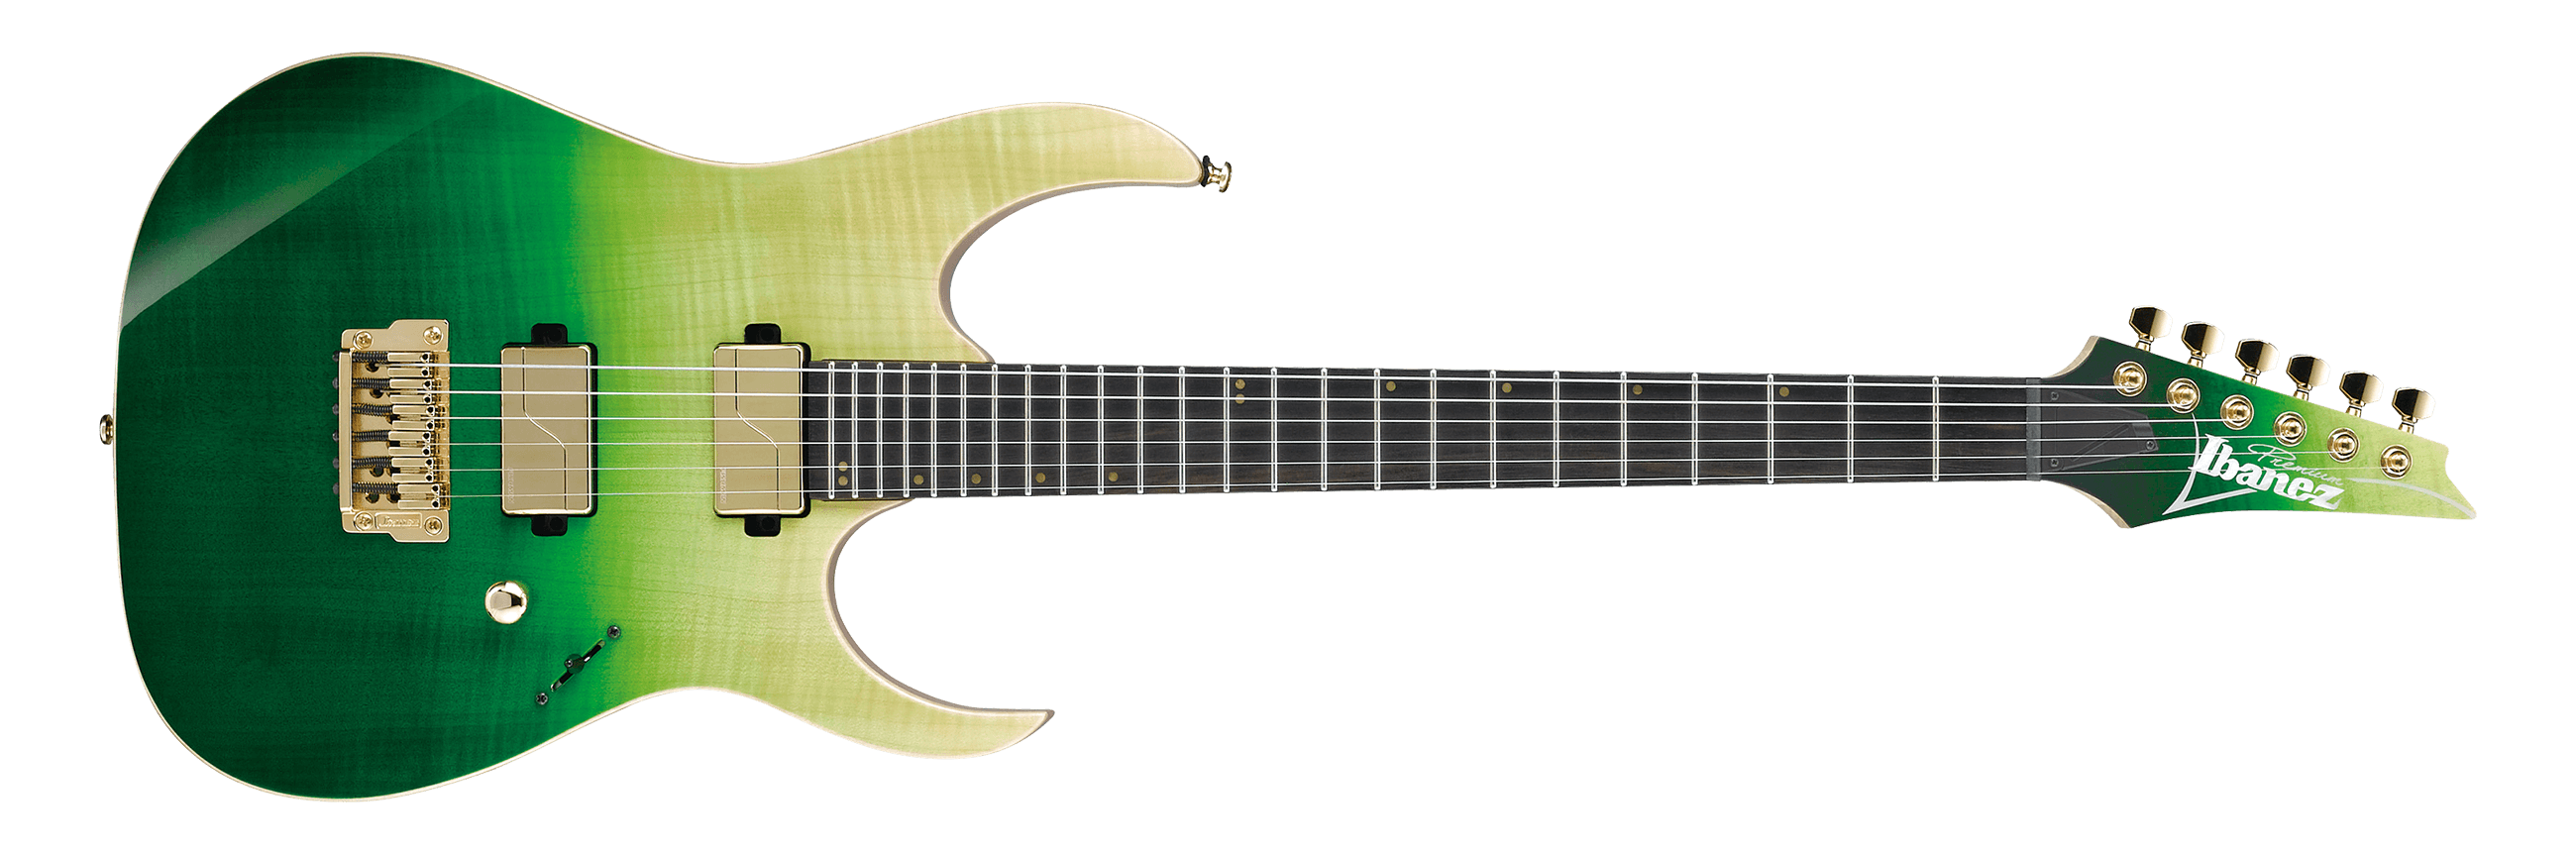 Image result for ibanez lhm1